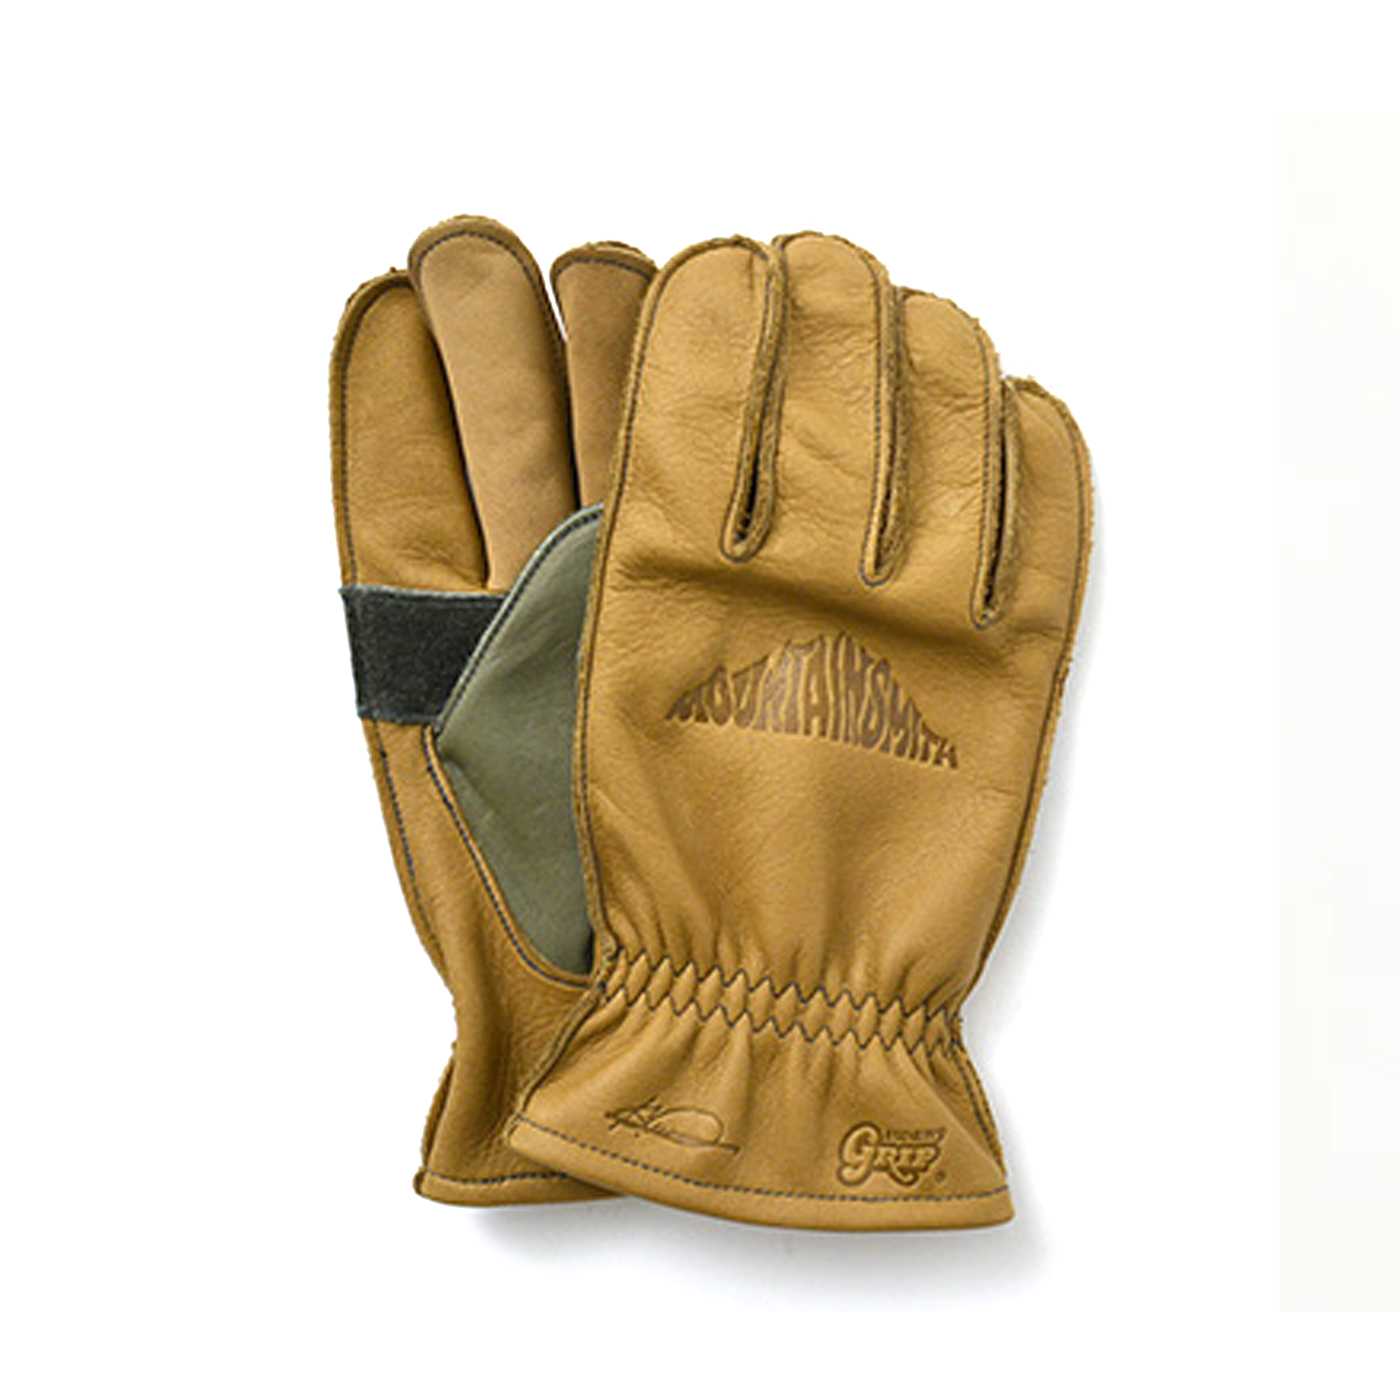 product: G-1 / color: BROWN 1